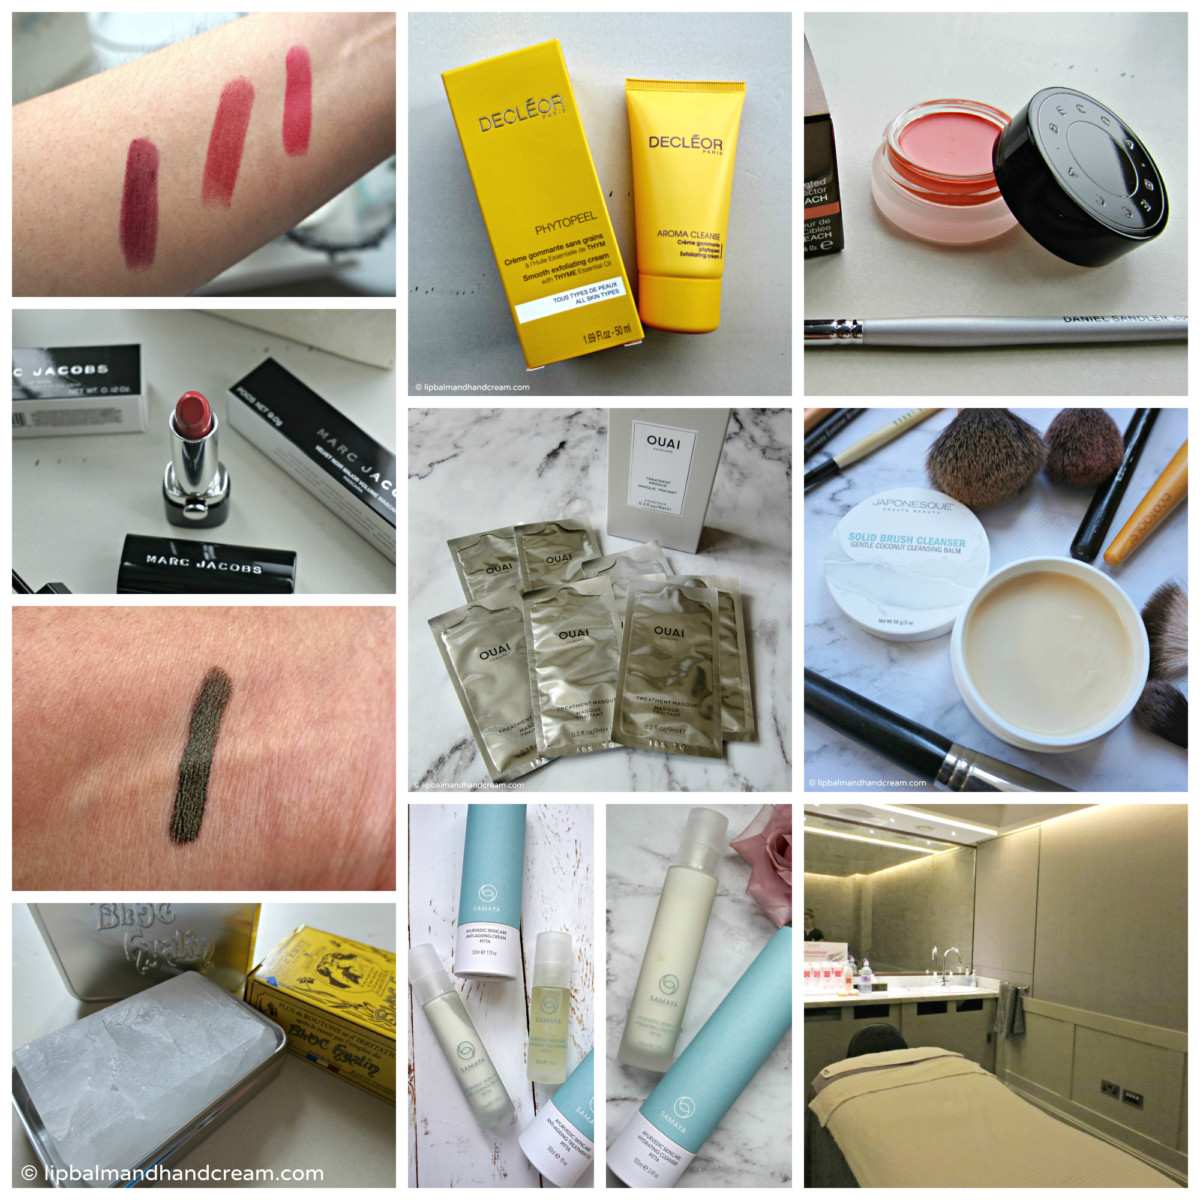 2016 beauty discoveries, champions and old friends